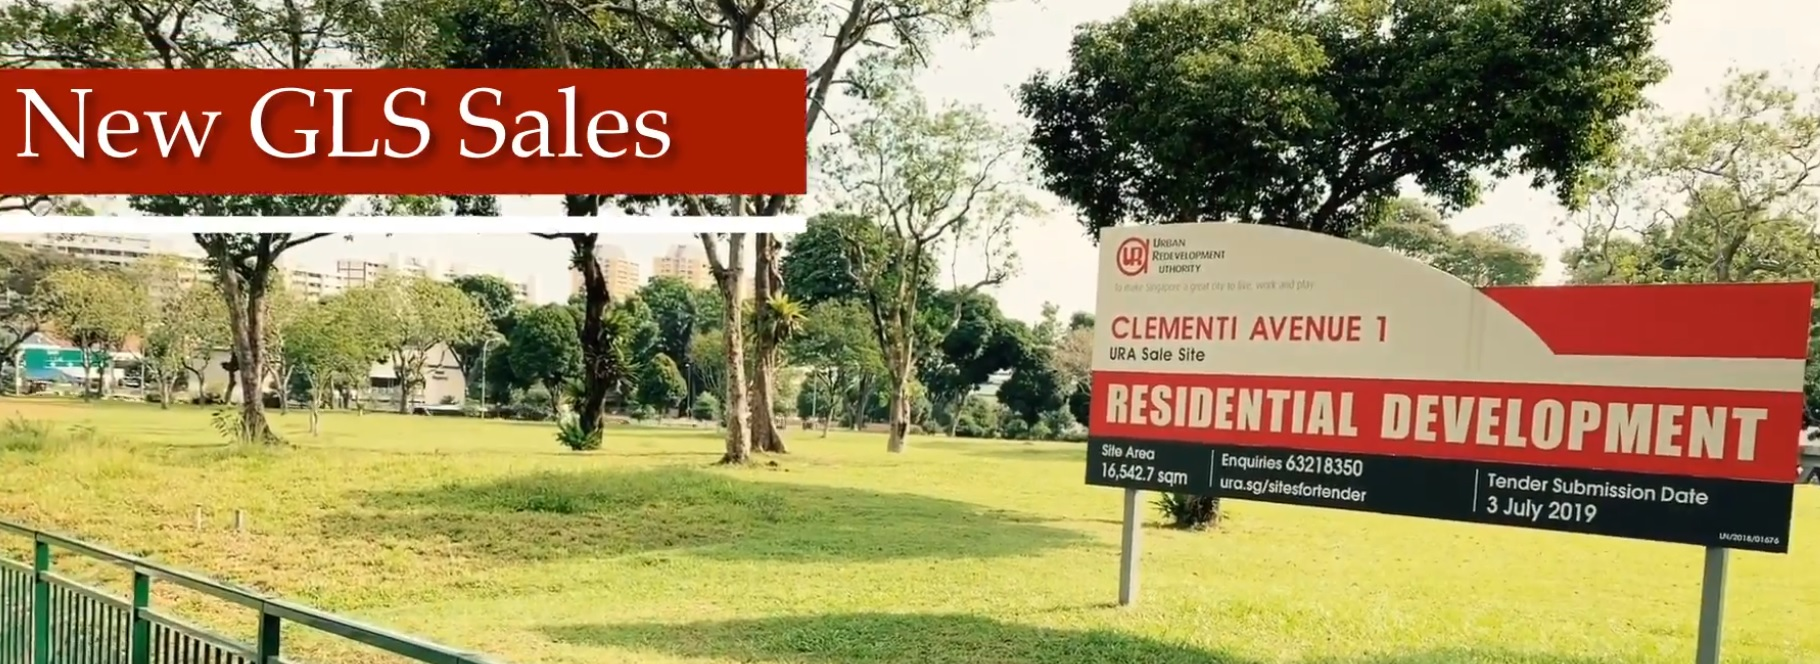 Clementi Ave 1